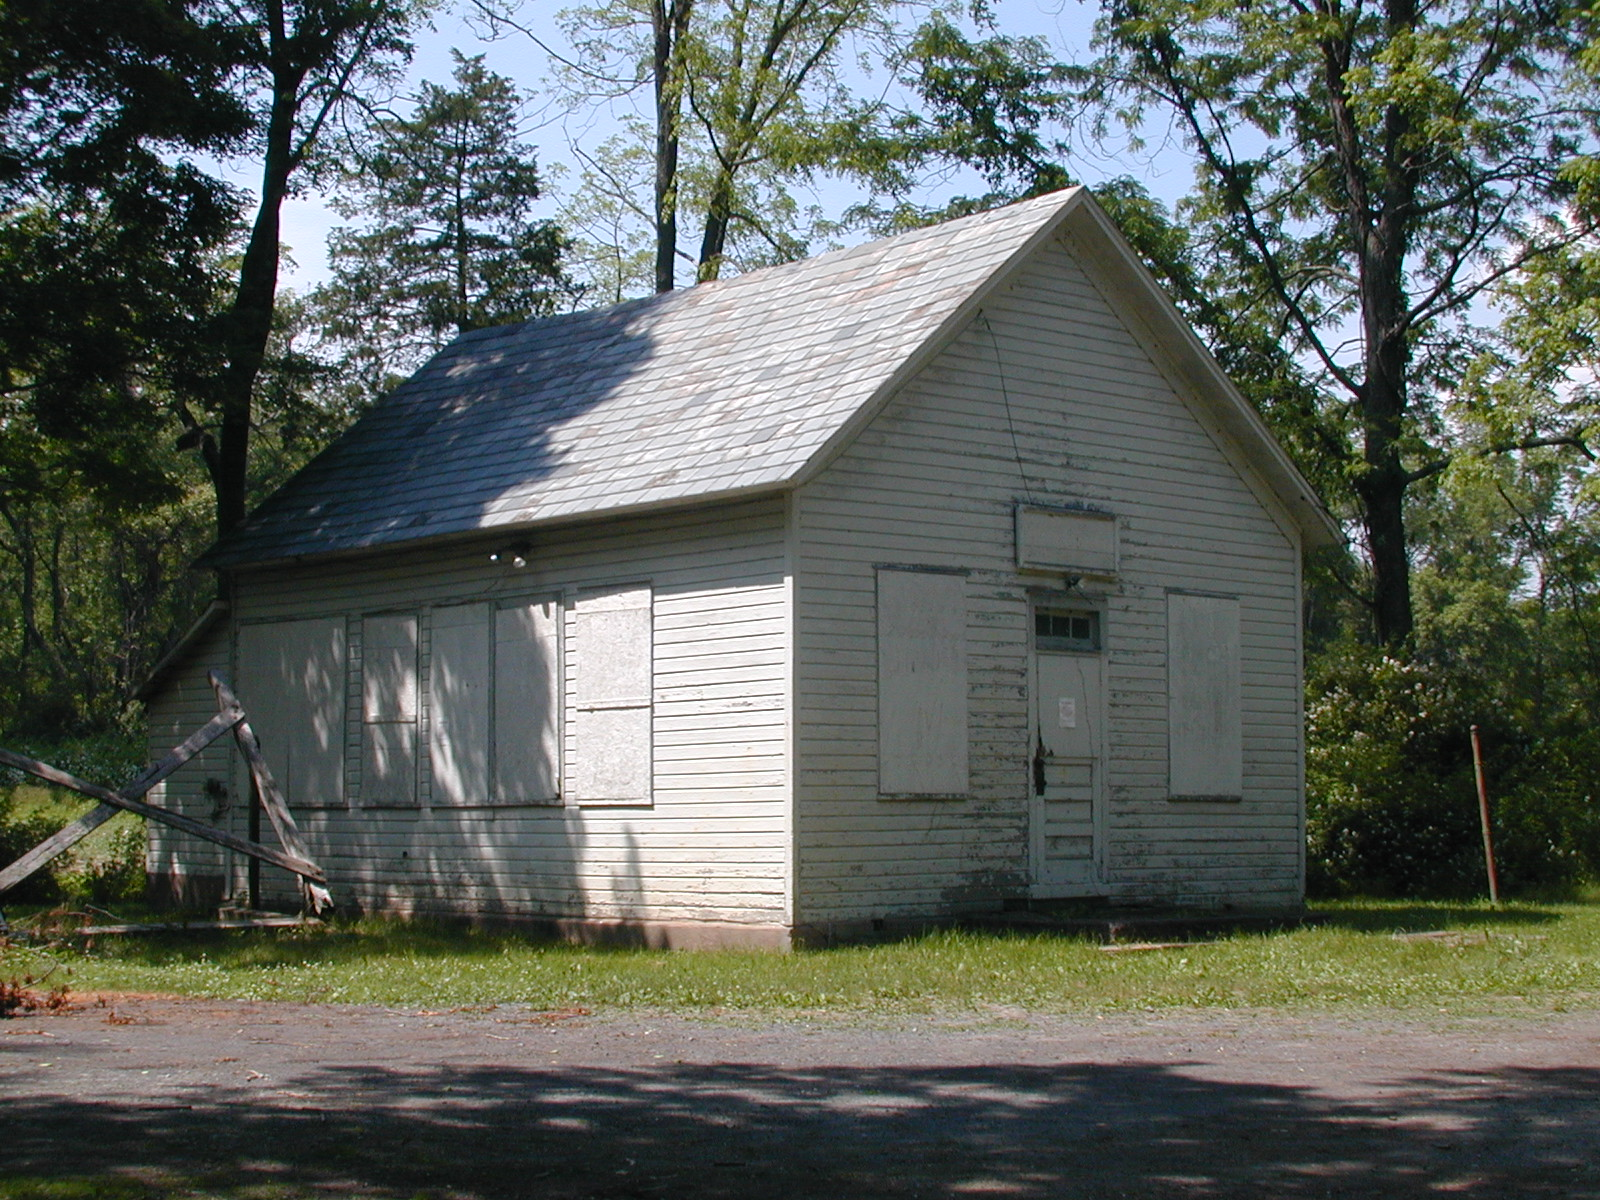 Calno schoolhouse, front